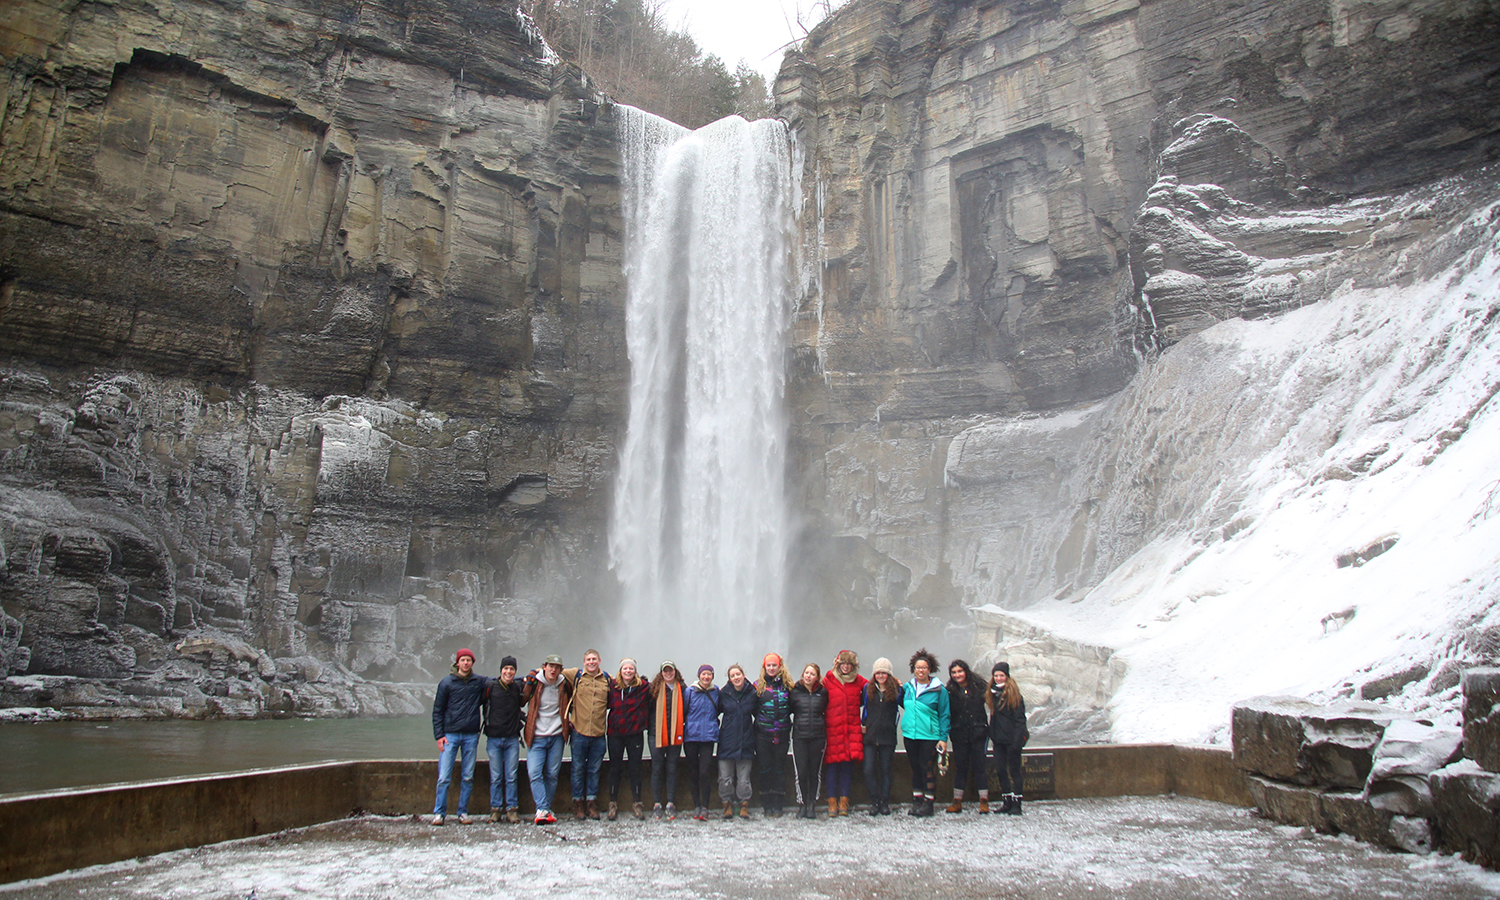 Members of the HWS Outdoor Recreation Adventure Program take a group photo at Taughannock Falls State Park in Ulysses, NY.